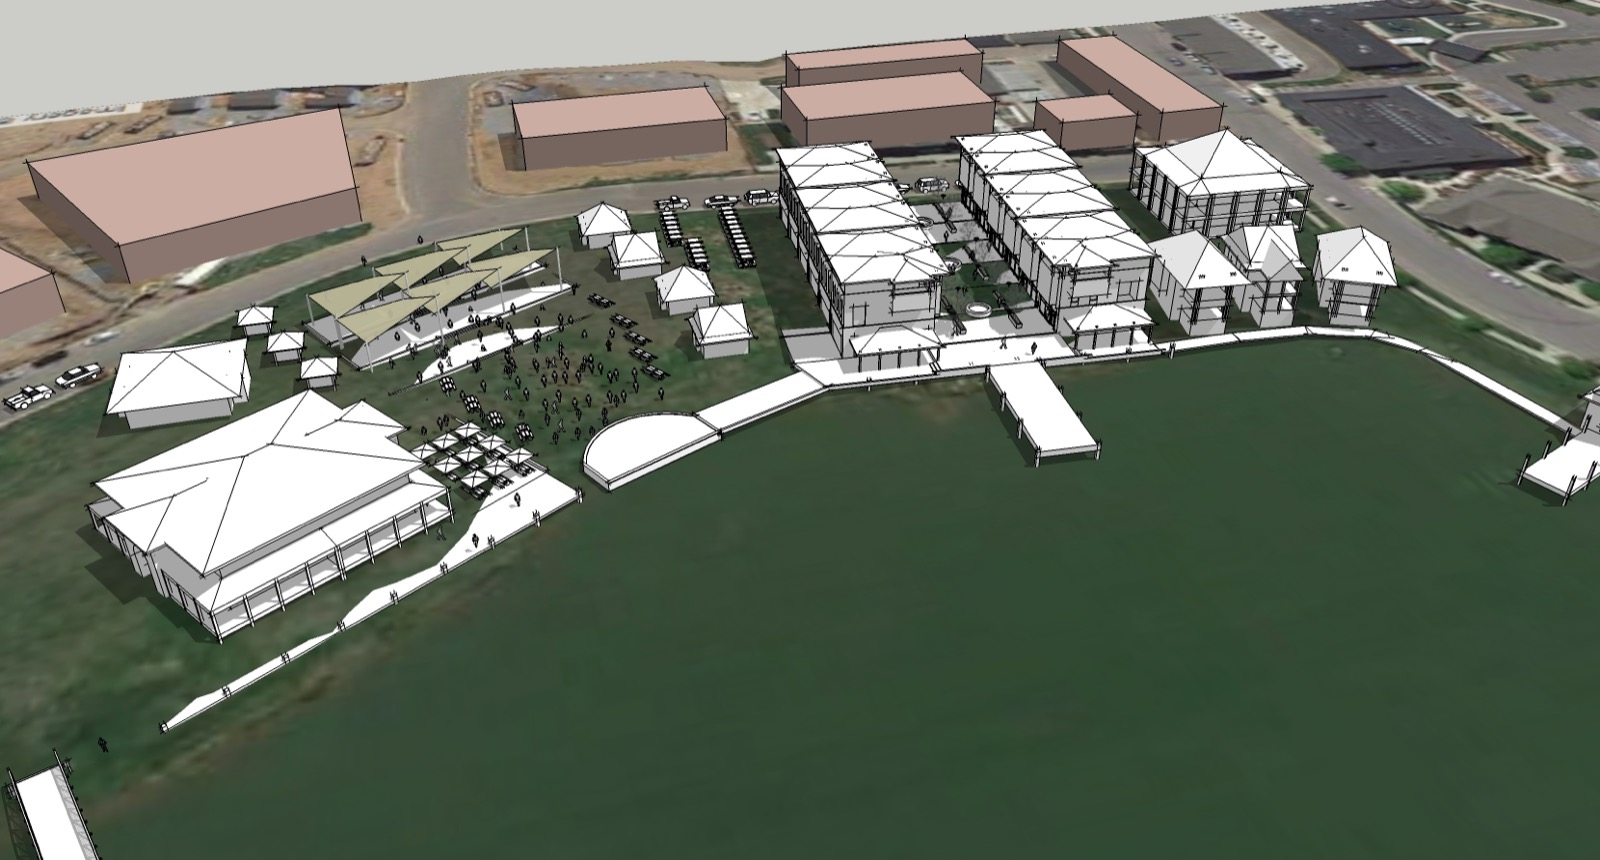 3D model of Westhaven mixed-use community.